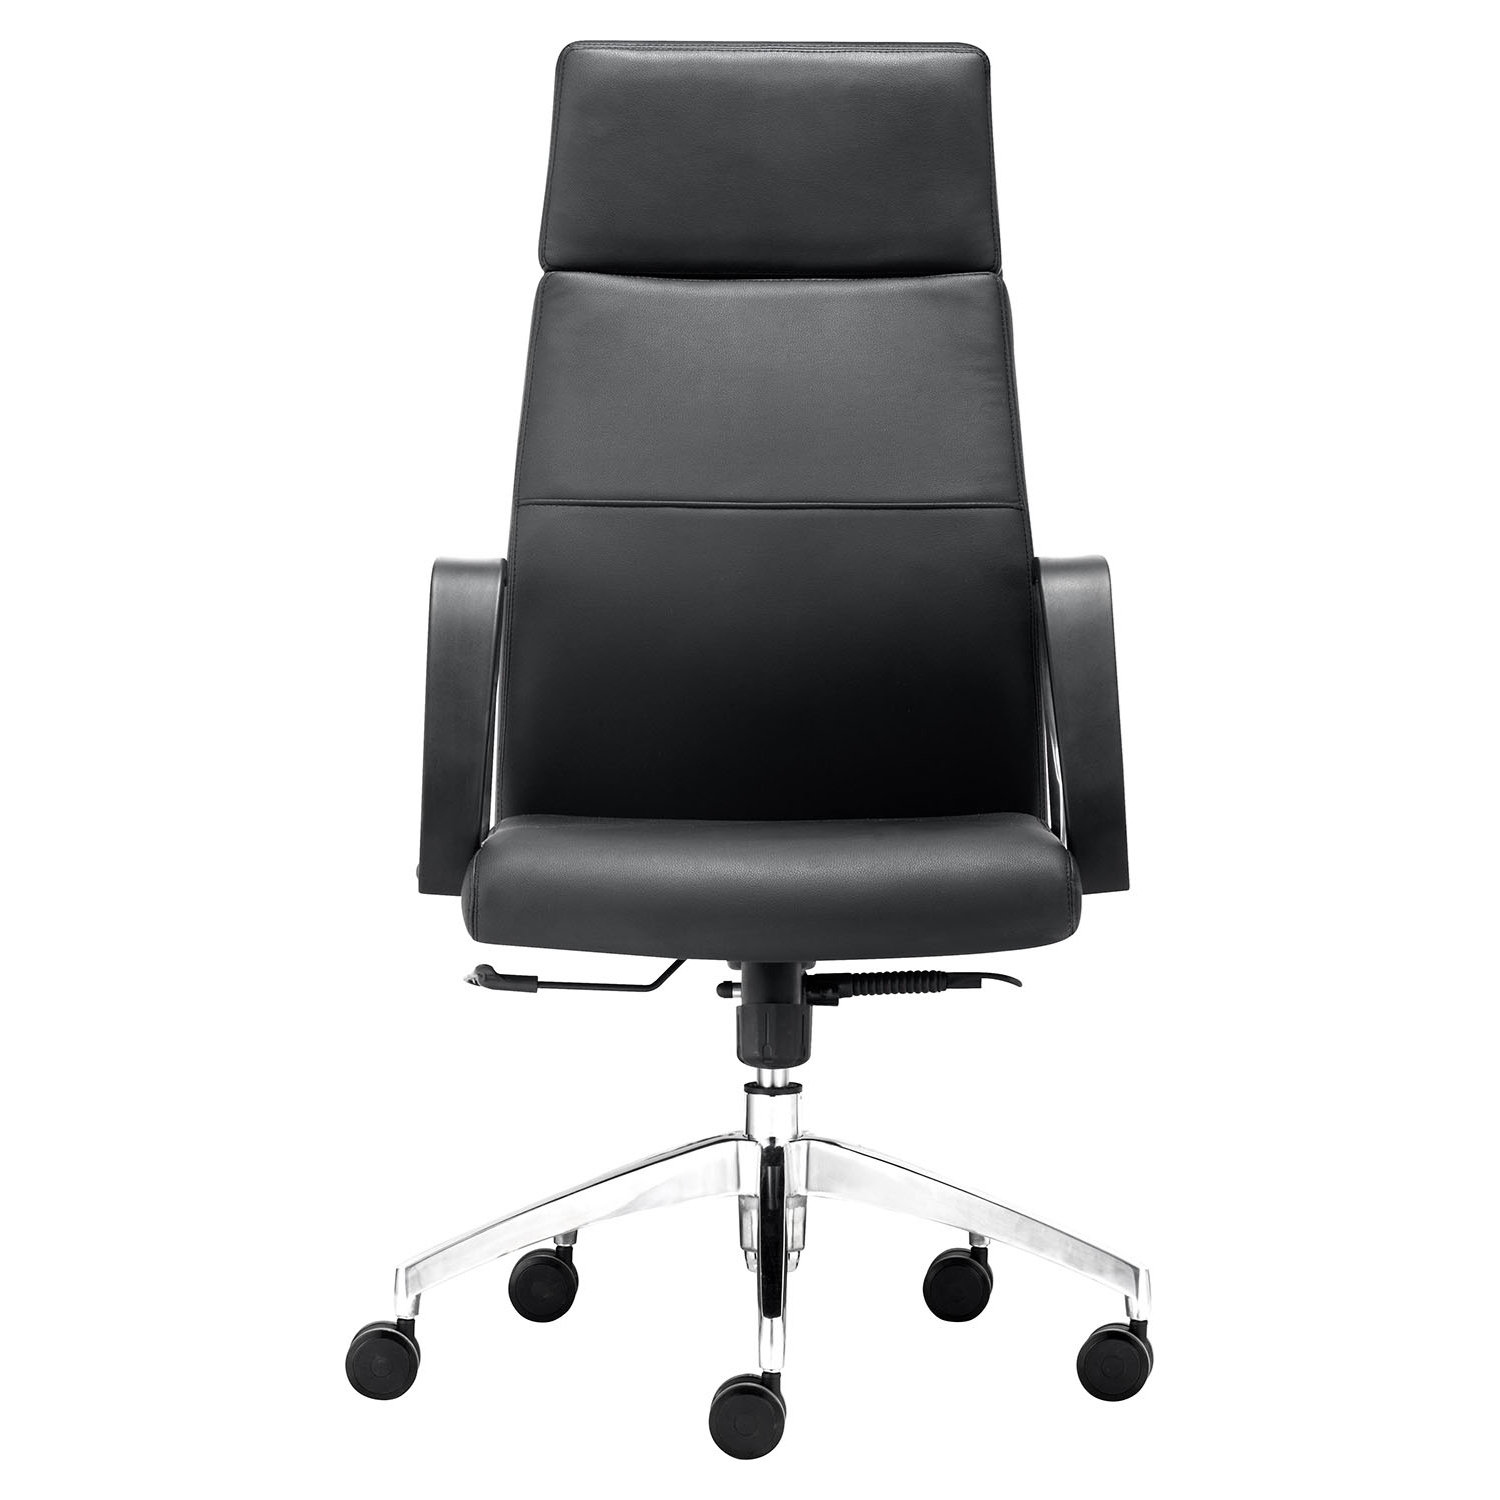 Conductor High Back Office Chair - Casters, Black